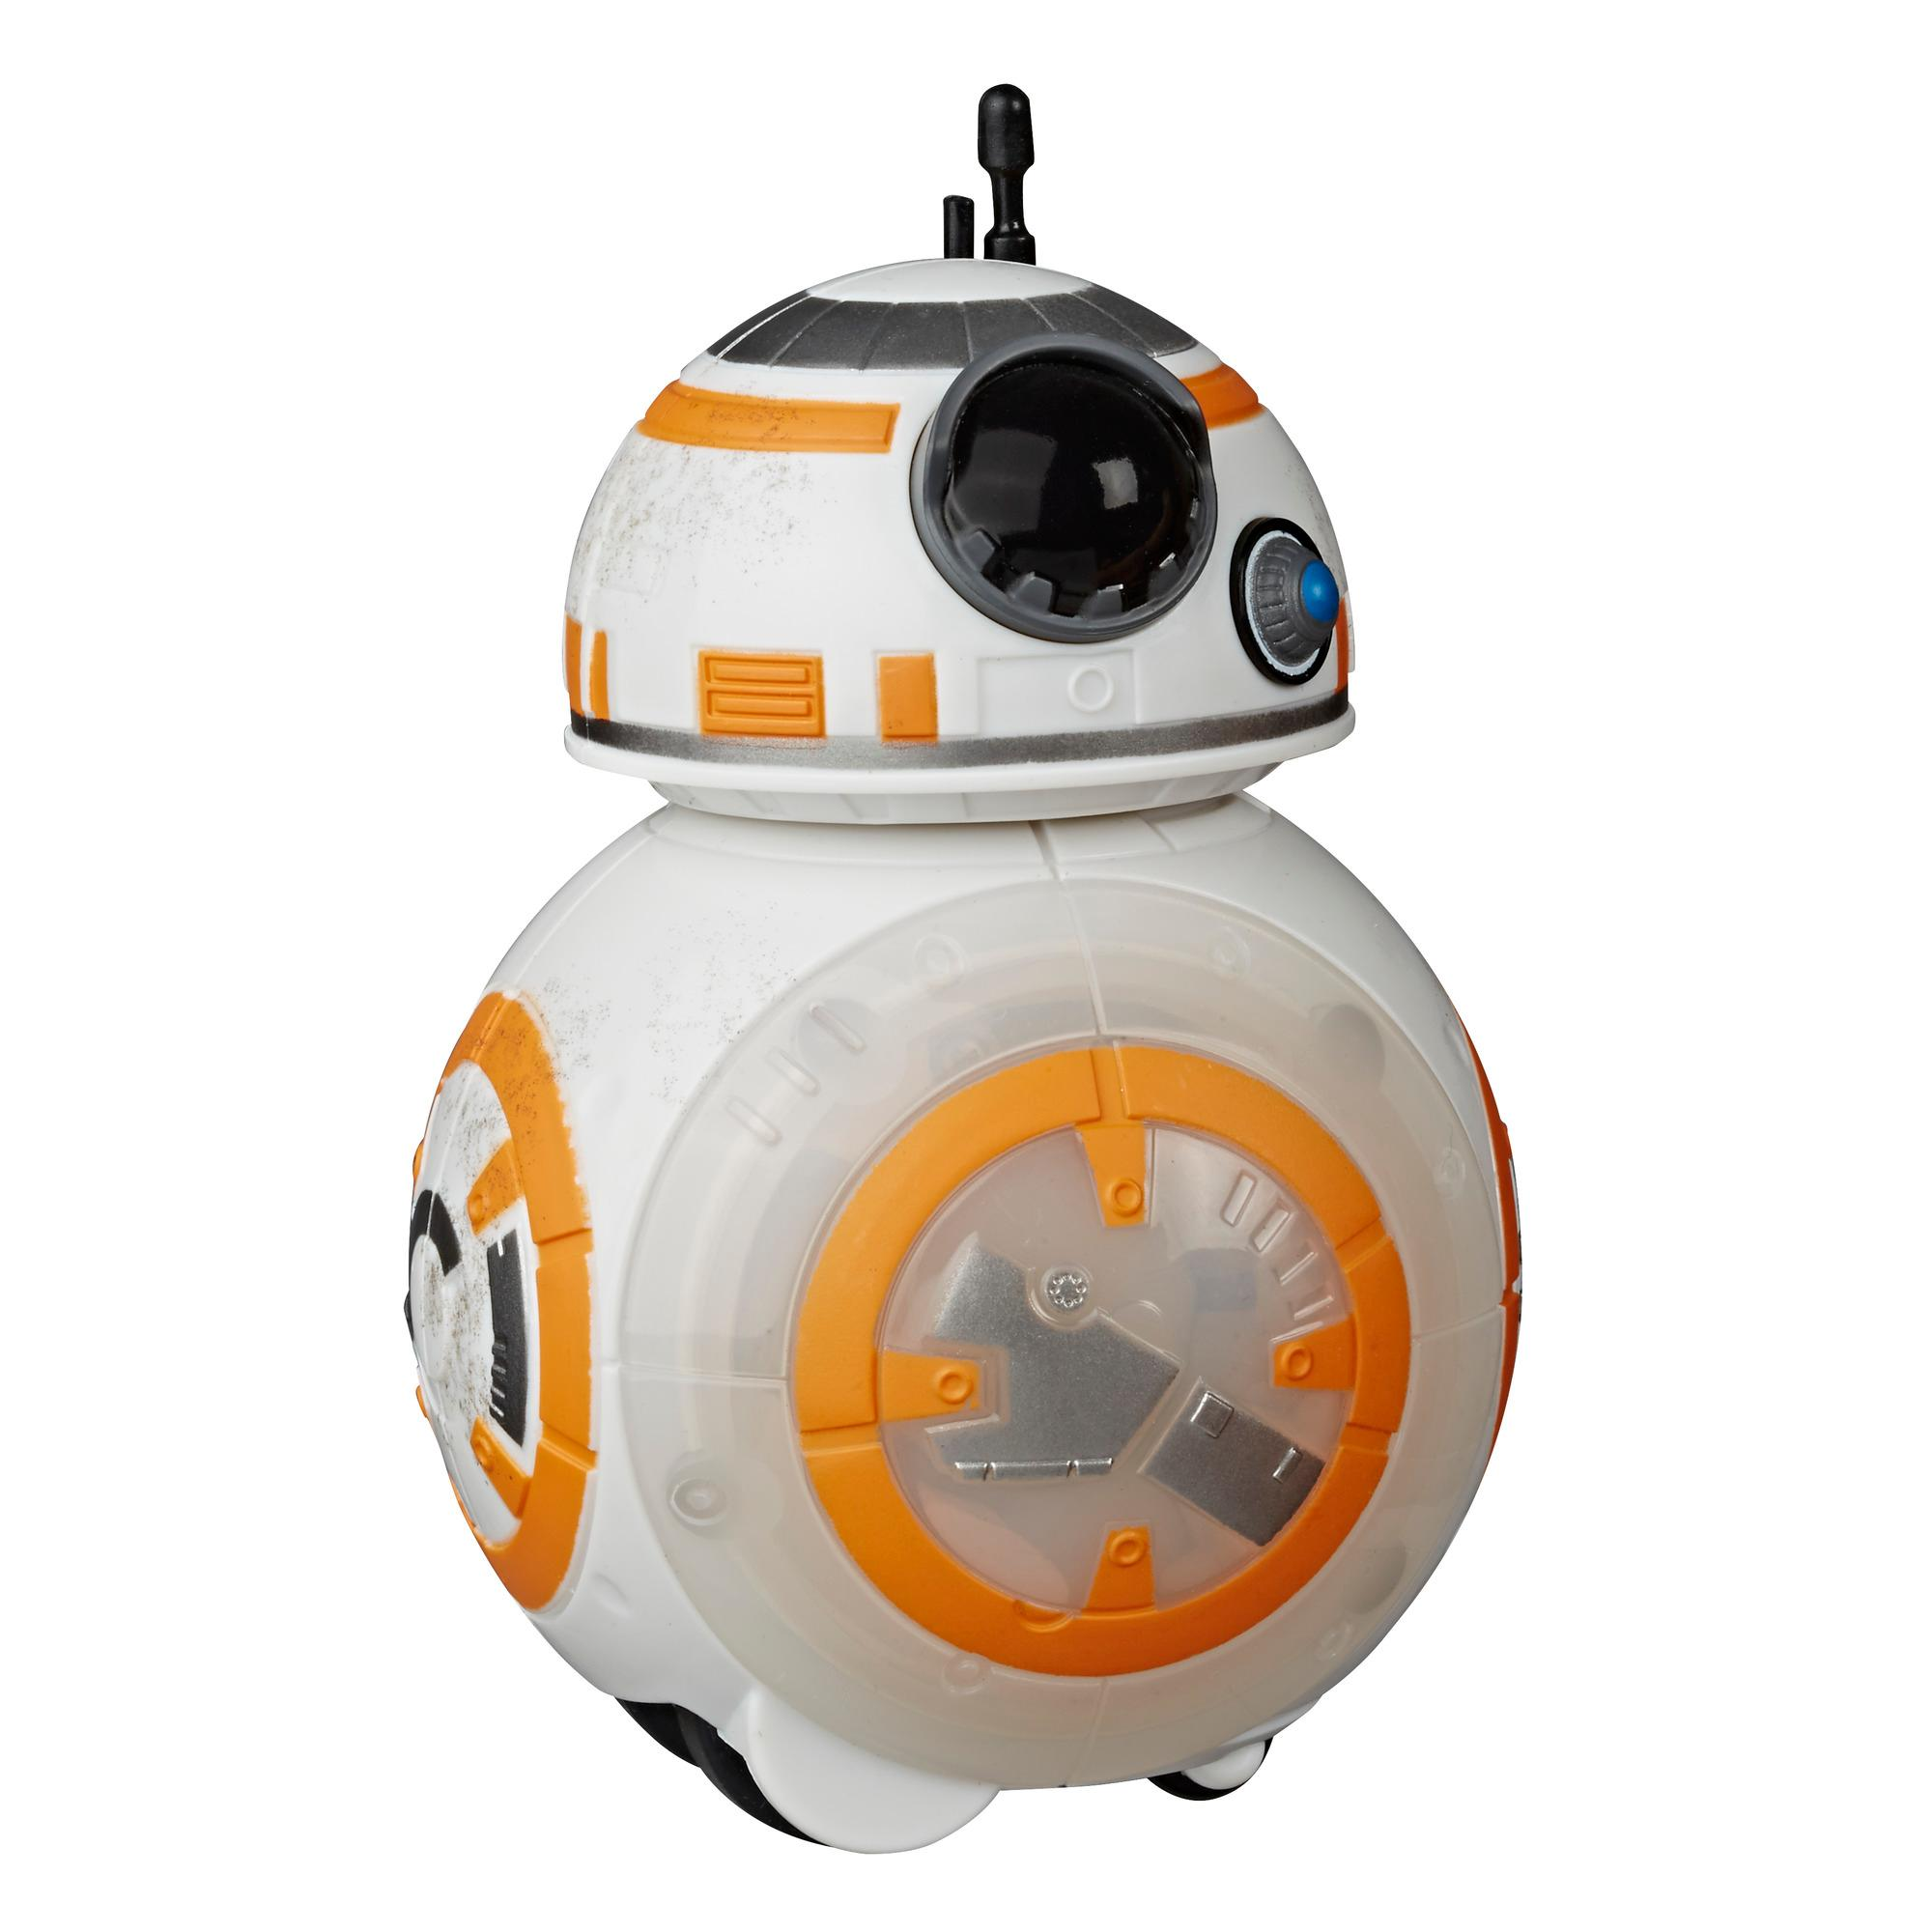 Star Wars Spark and Go BB-8 Rolling Astromech Droid Rev-and-Go Toy